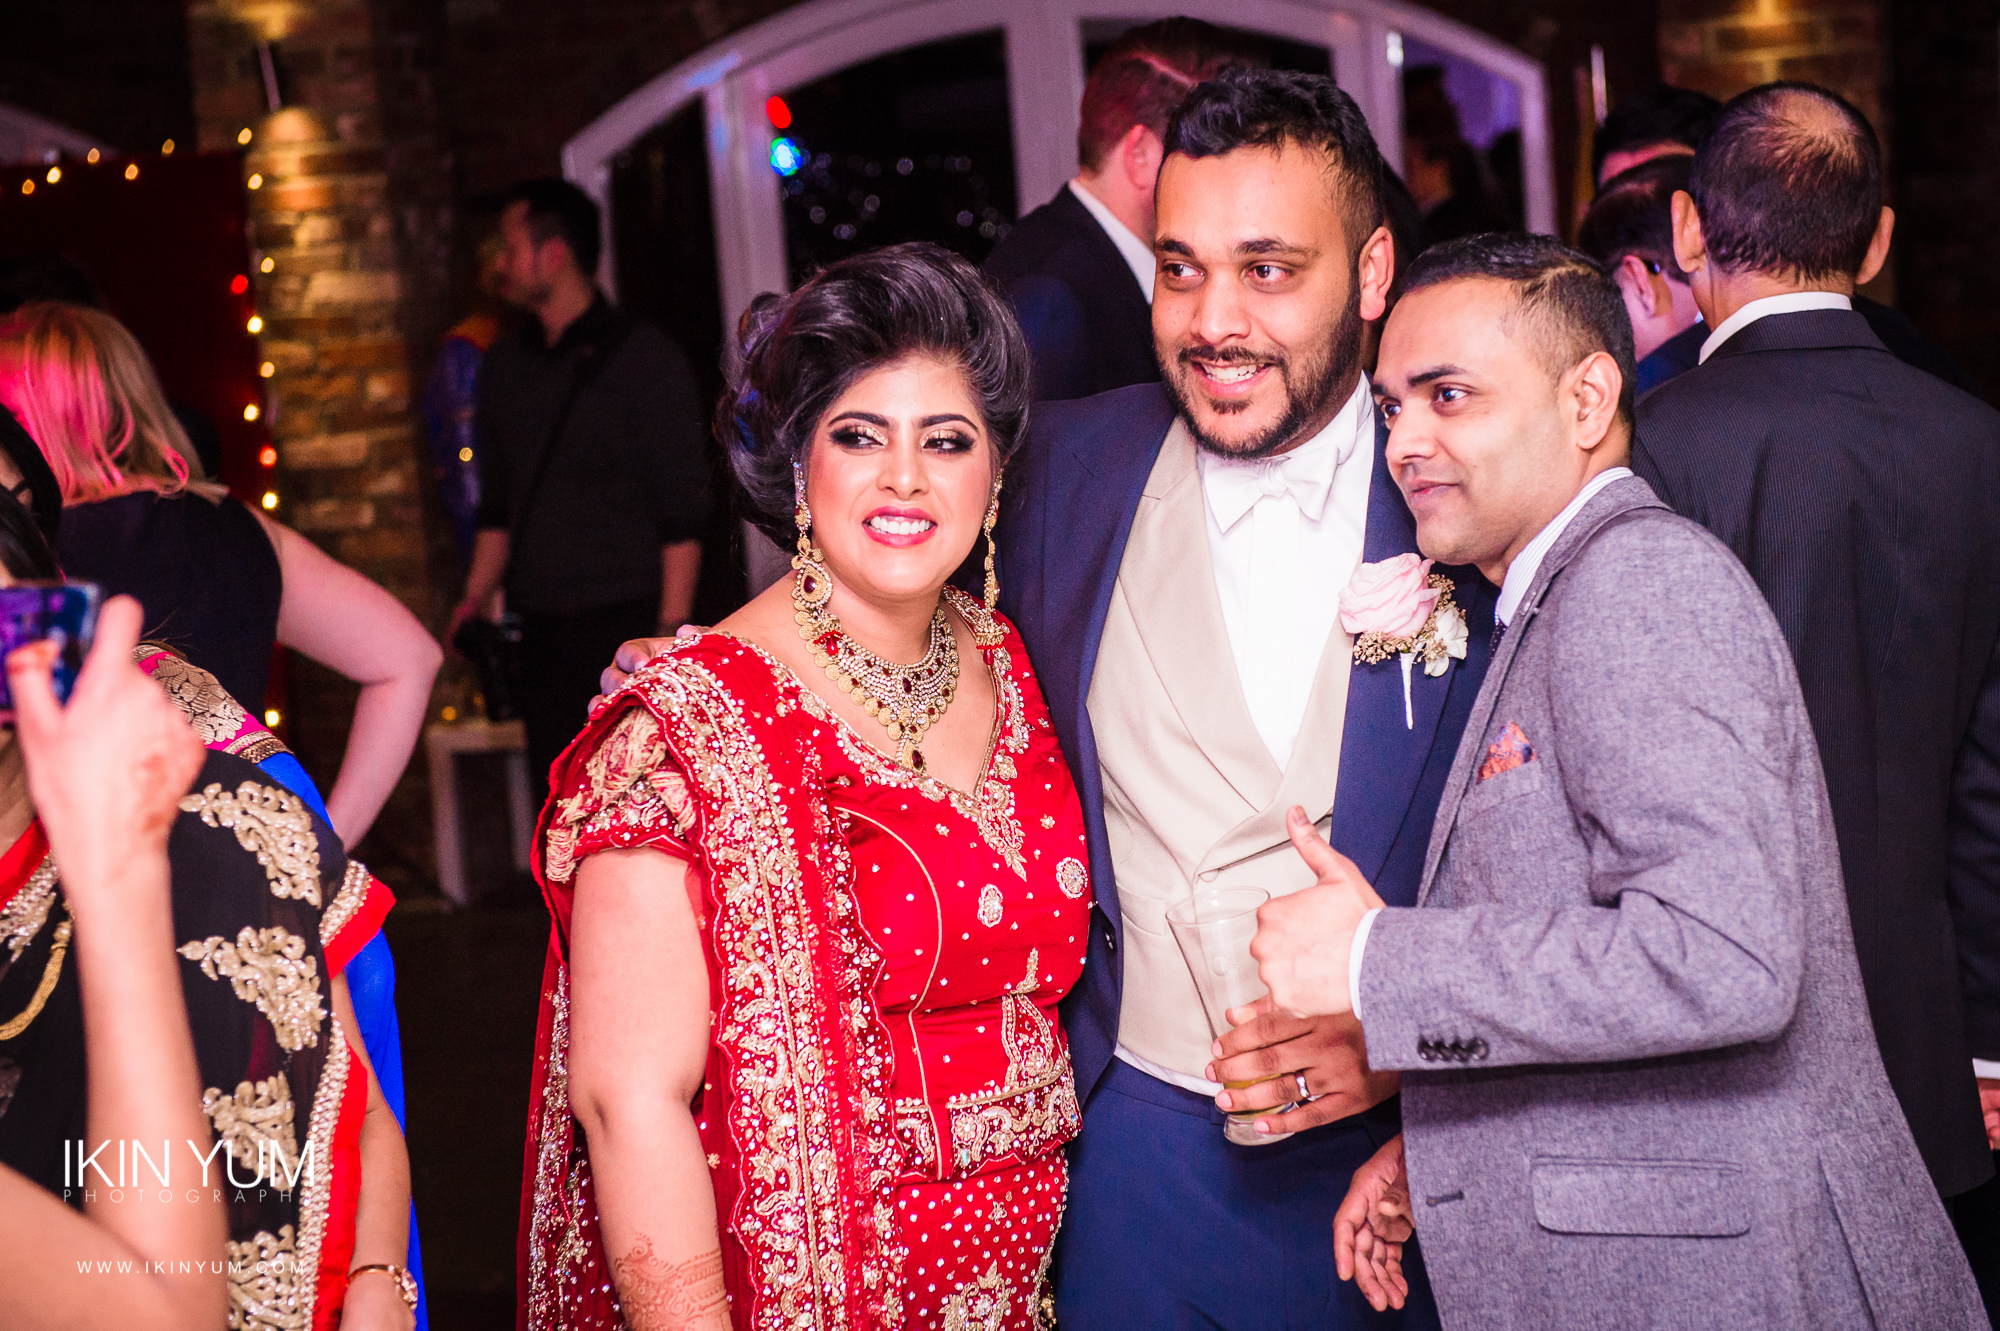 Northbrook Park Wedding - Ikin Yum Photography-0155.jpg